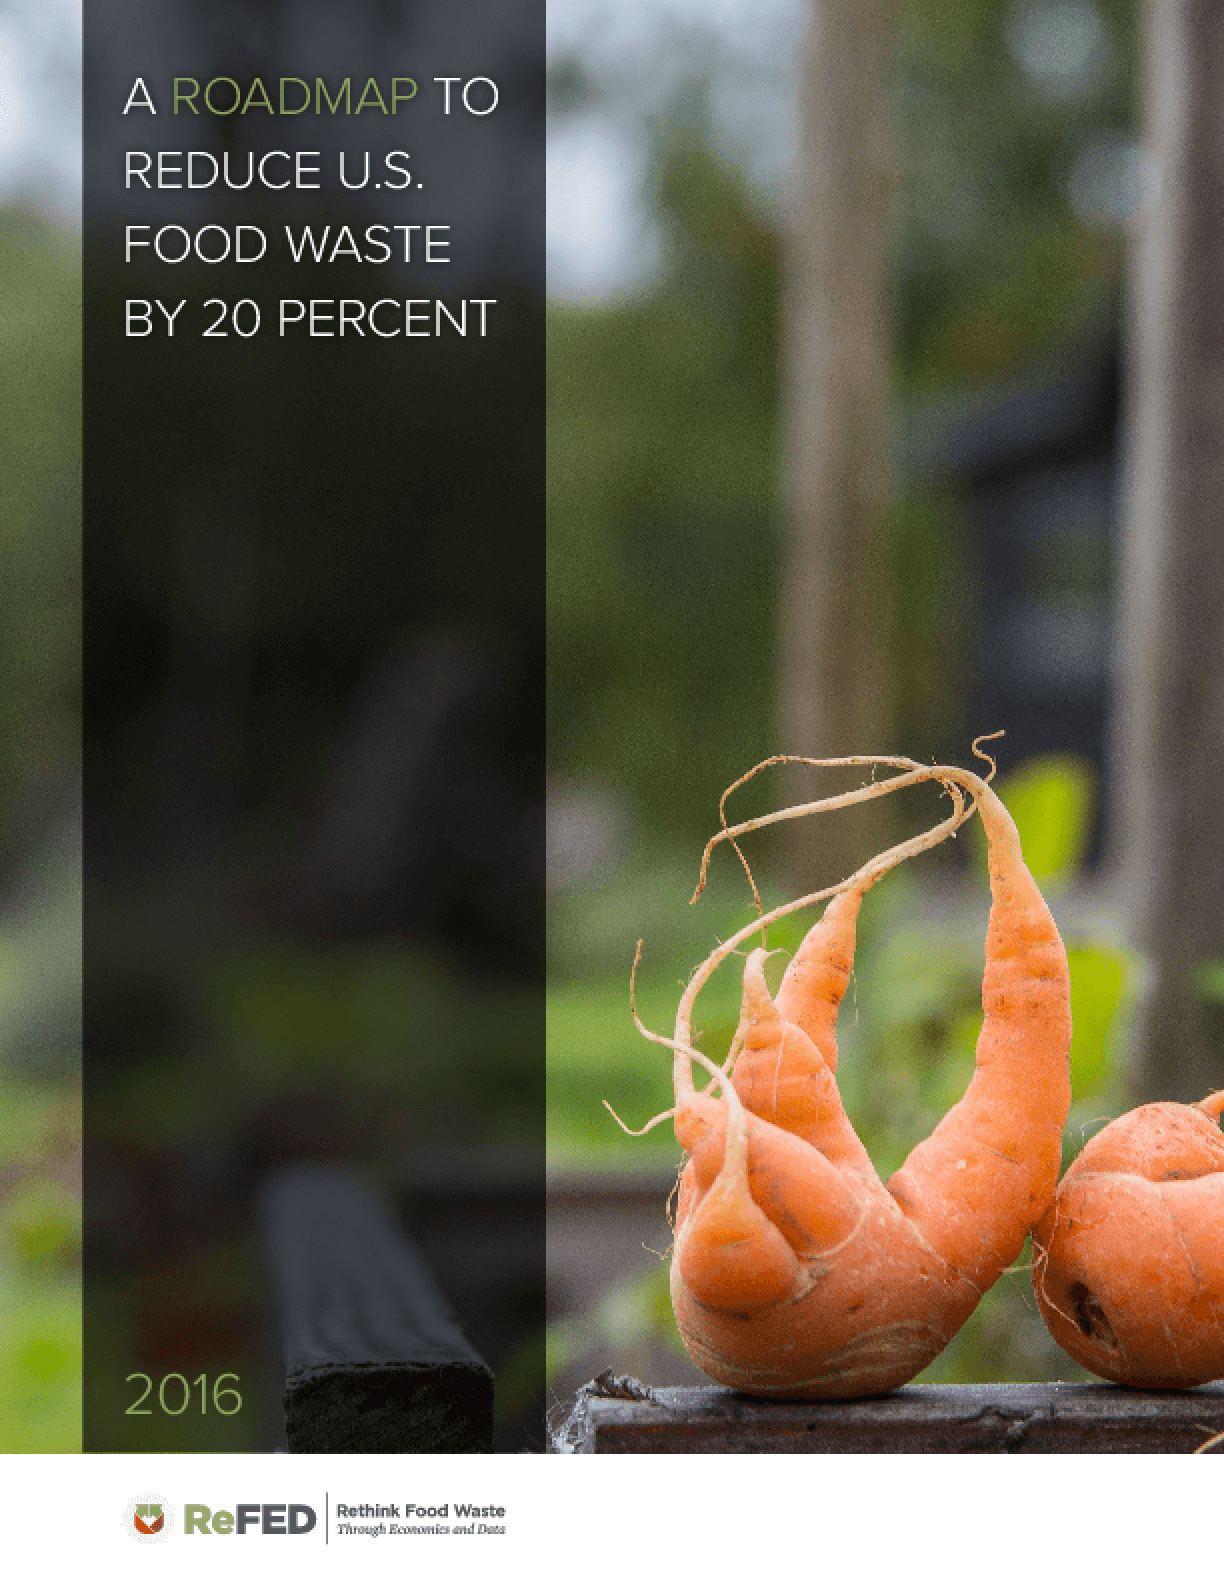 A Roadmap to Reduce U.S. Food Waste by 20 Percent